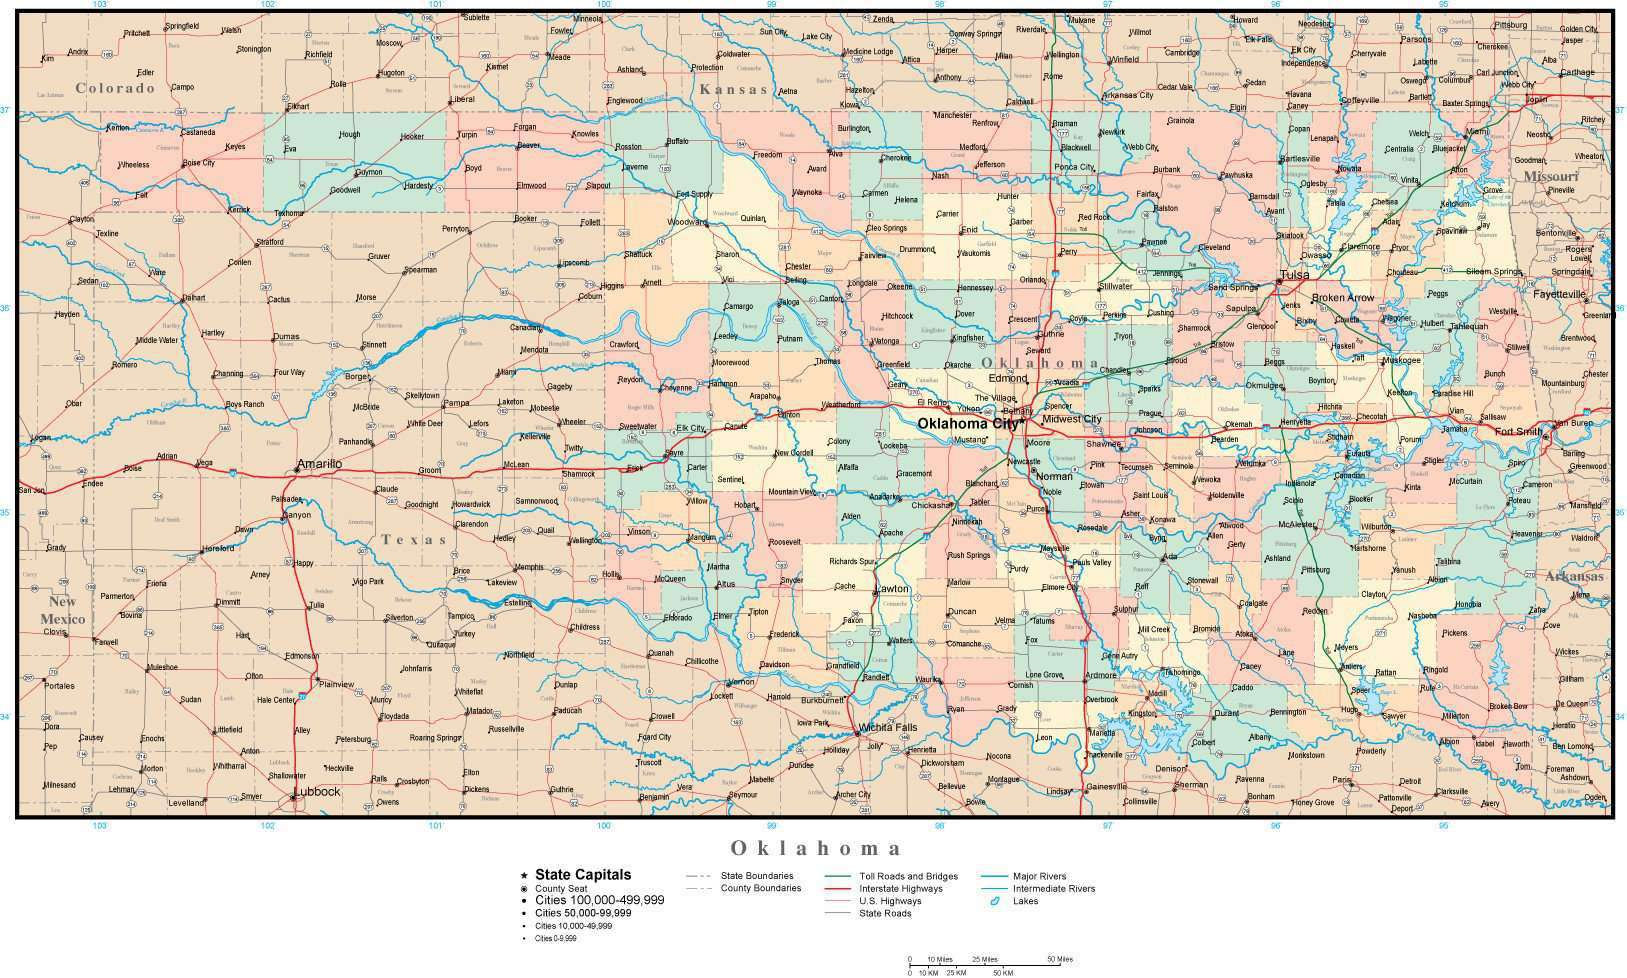 Oklahoma Adobe Illustrator Map with Counties, Cities, County Seats ...